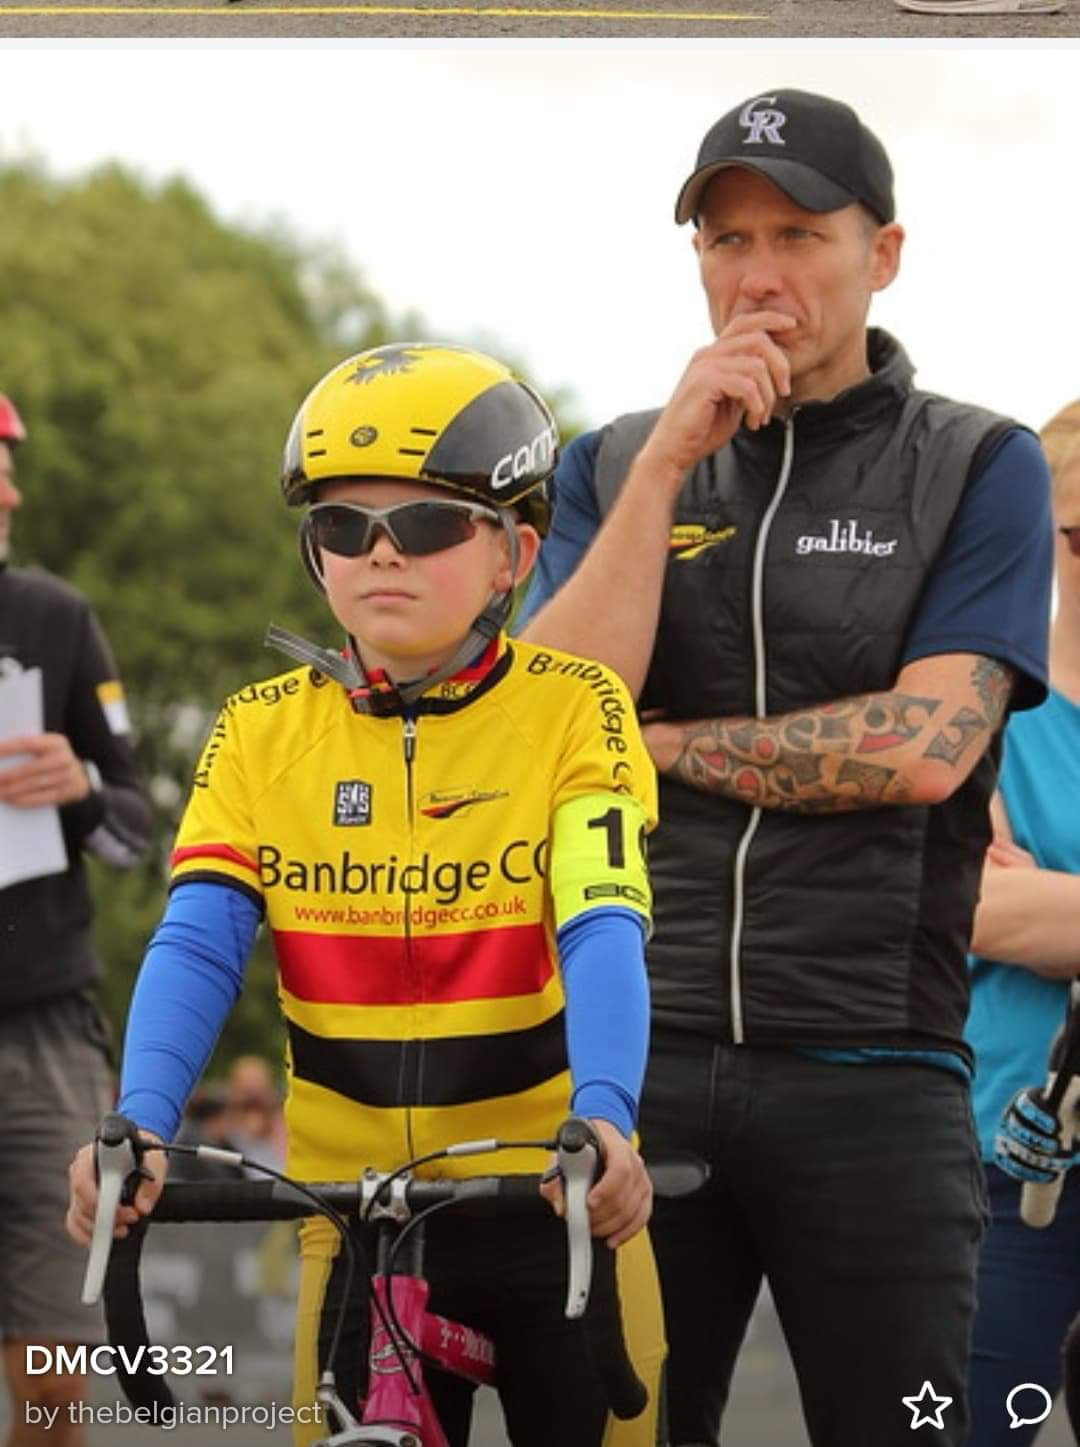 Pedro McBride offering support to Matthew McAllister.. (Photo: Belgian project)